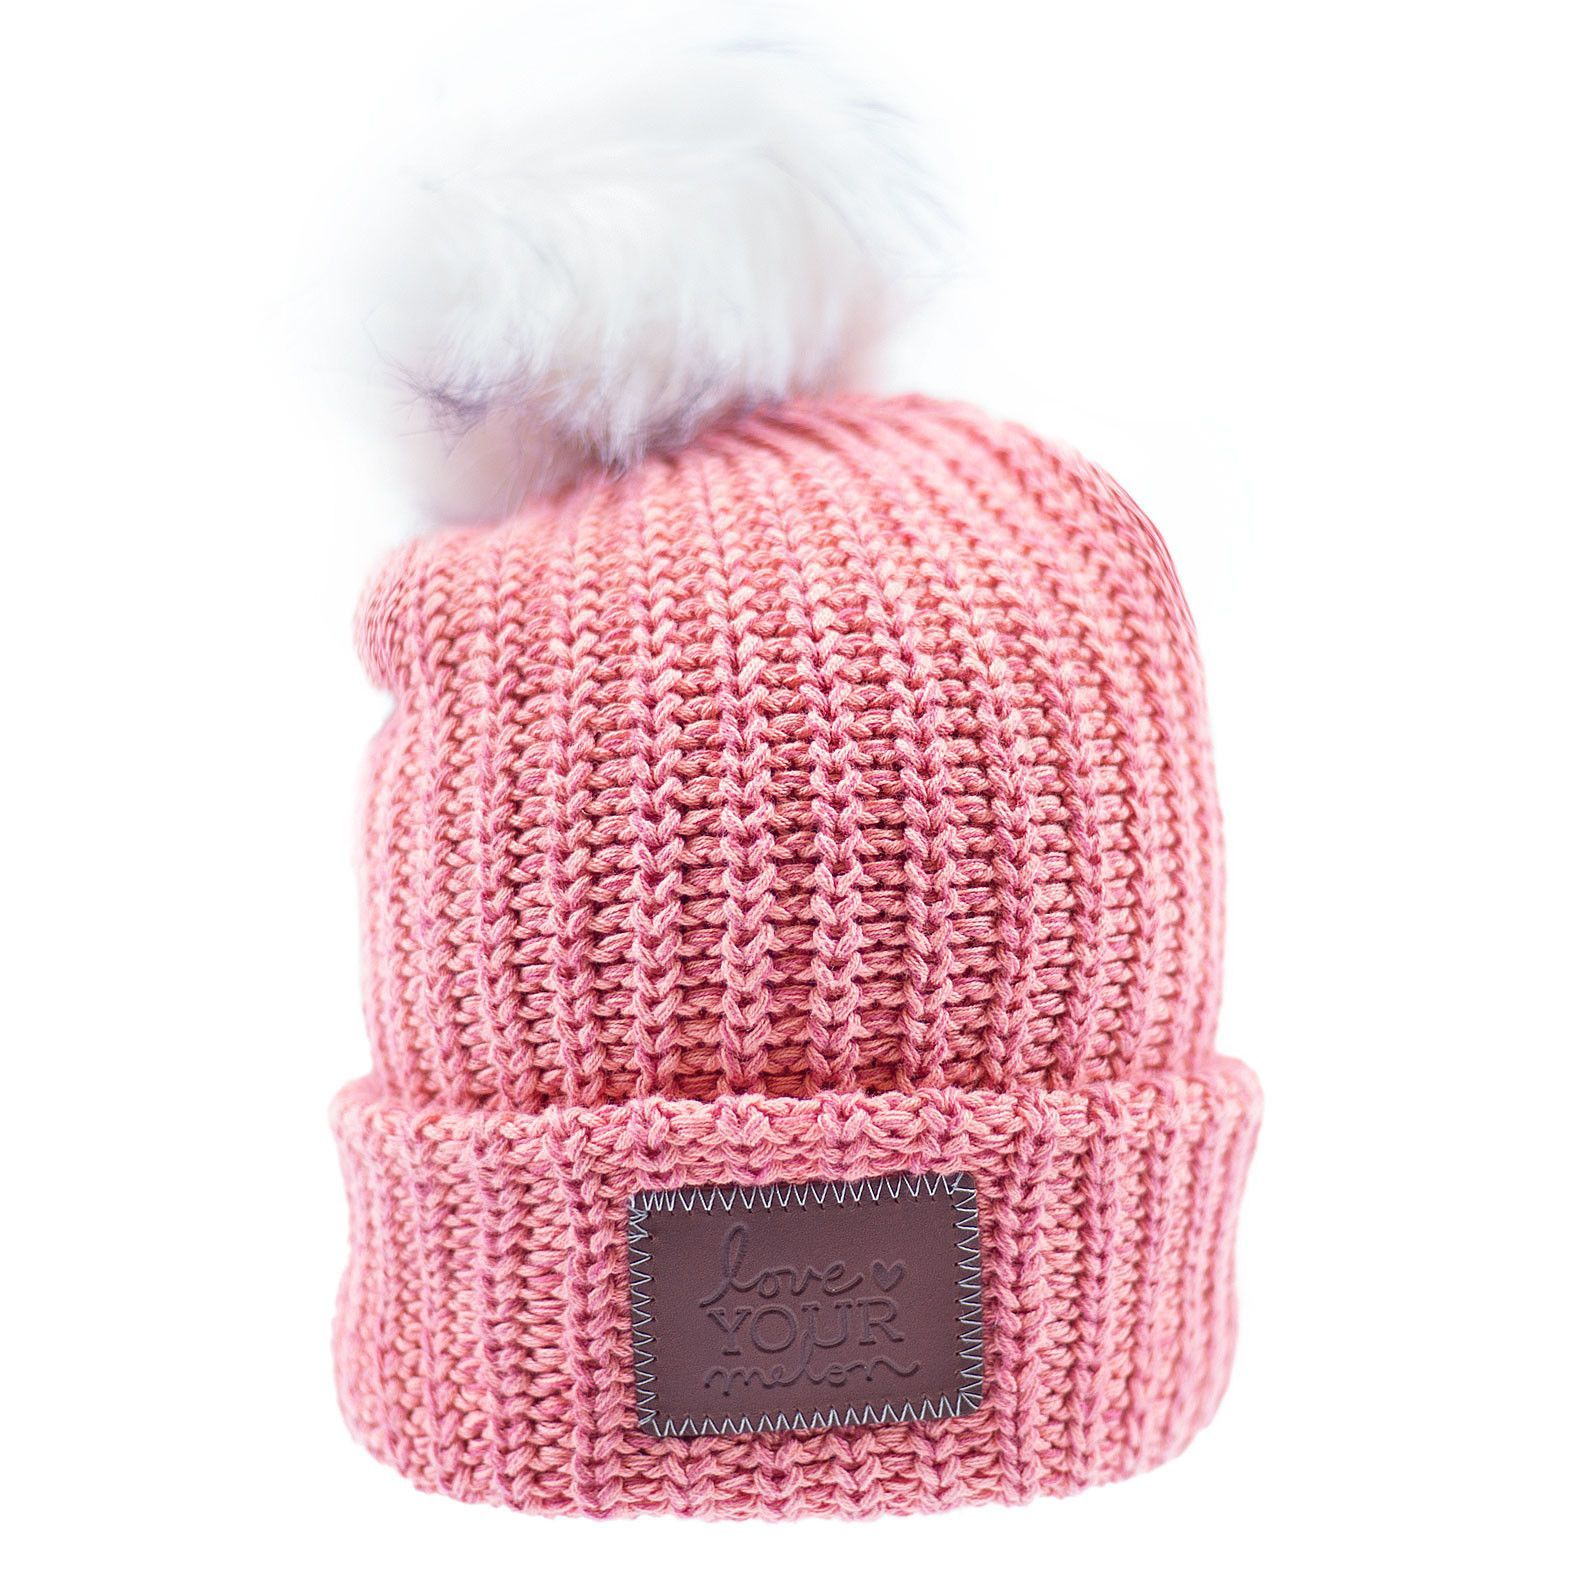 This pom beanie is knit out of 100% cotton yarn in pink and light pink  colors. It features a brown leather patch that is debossed with the Love  Your Melon ... 68829198ec99